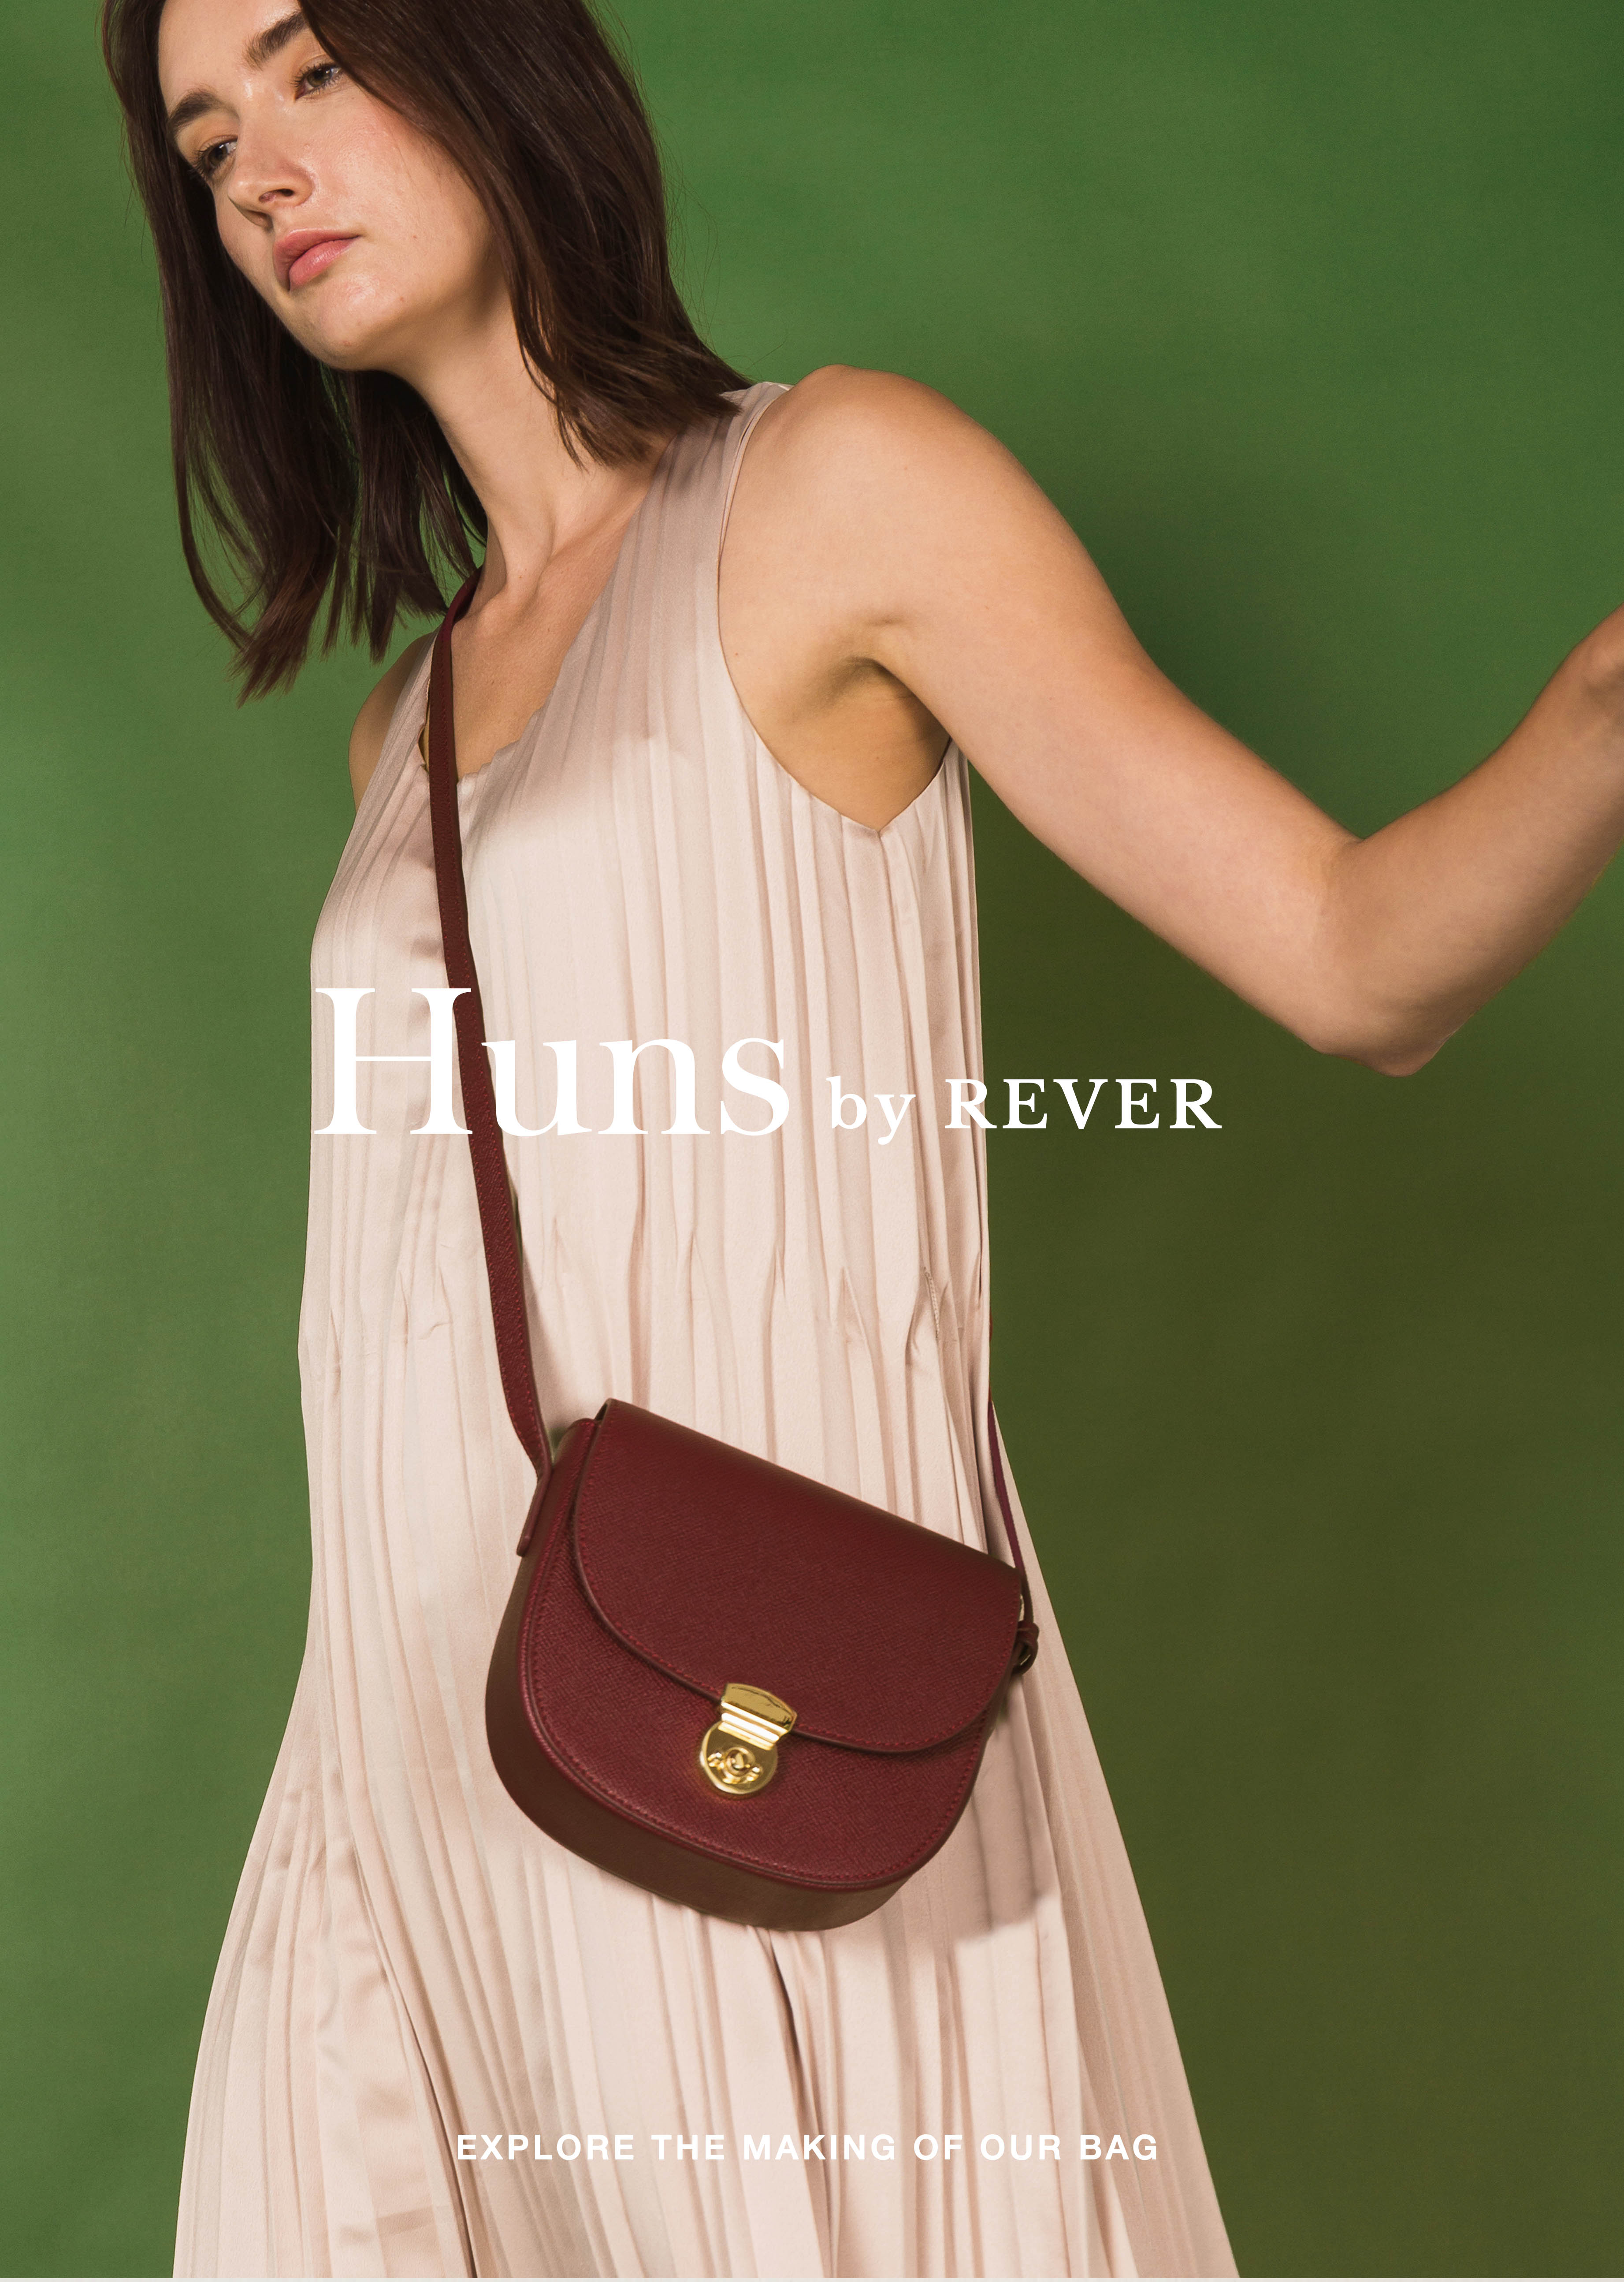 Shop Our Huns Saddle –Rever Leather Goods